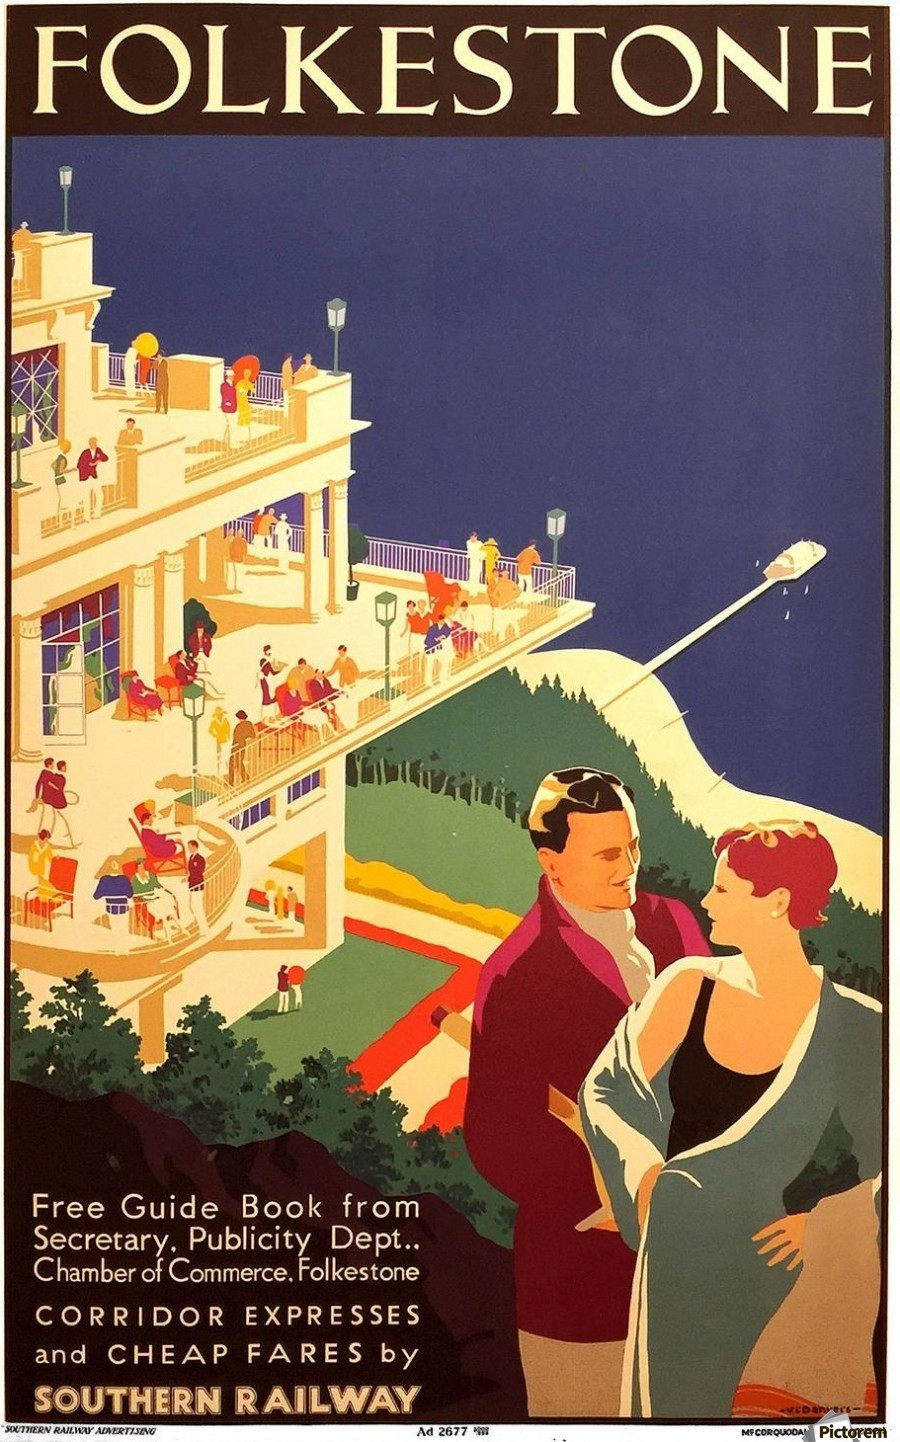 Deco Poster English Art Deco Period Travel Poster For Folkestone By Danvers 1934 Vintage Poster Canvas Artwork